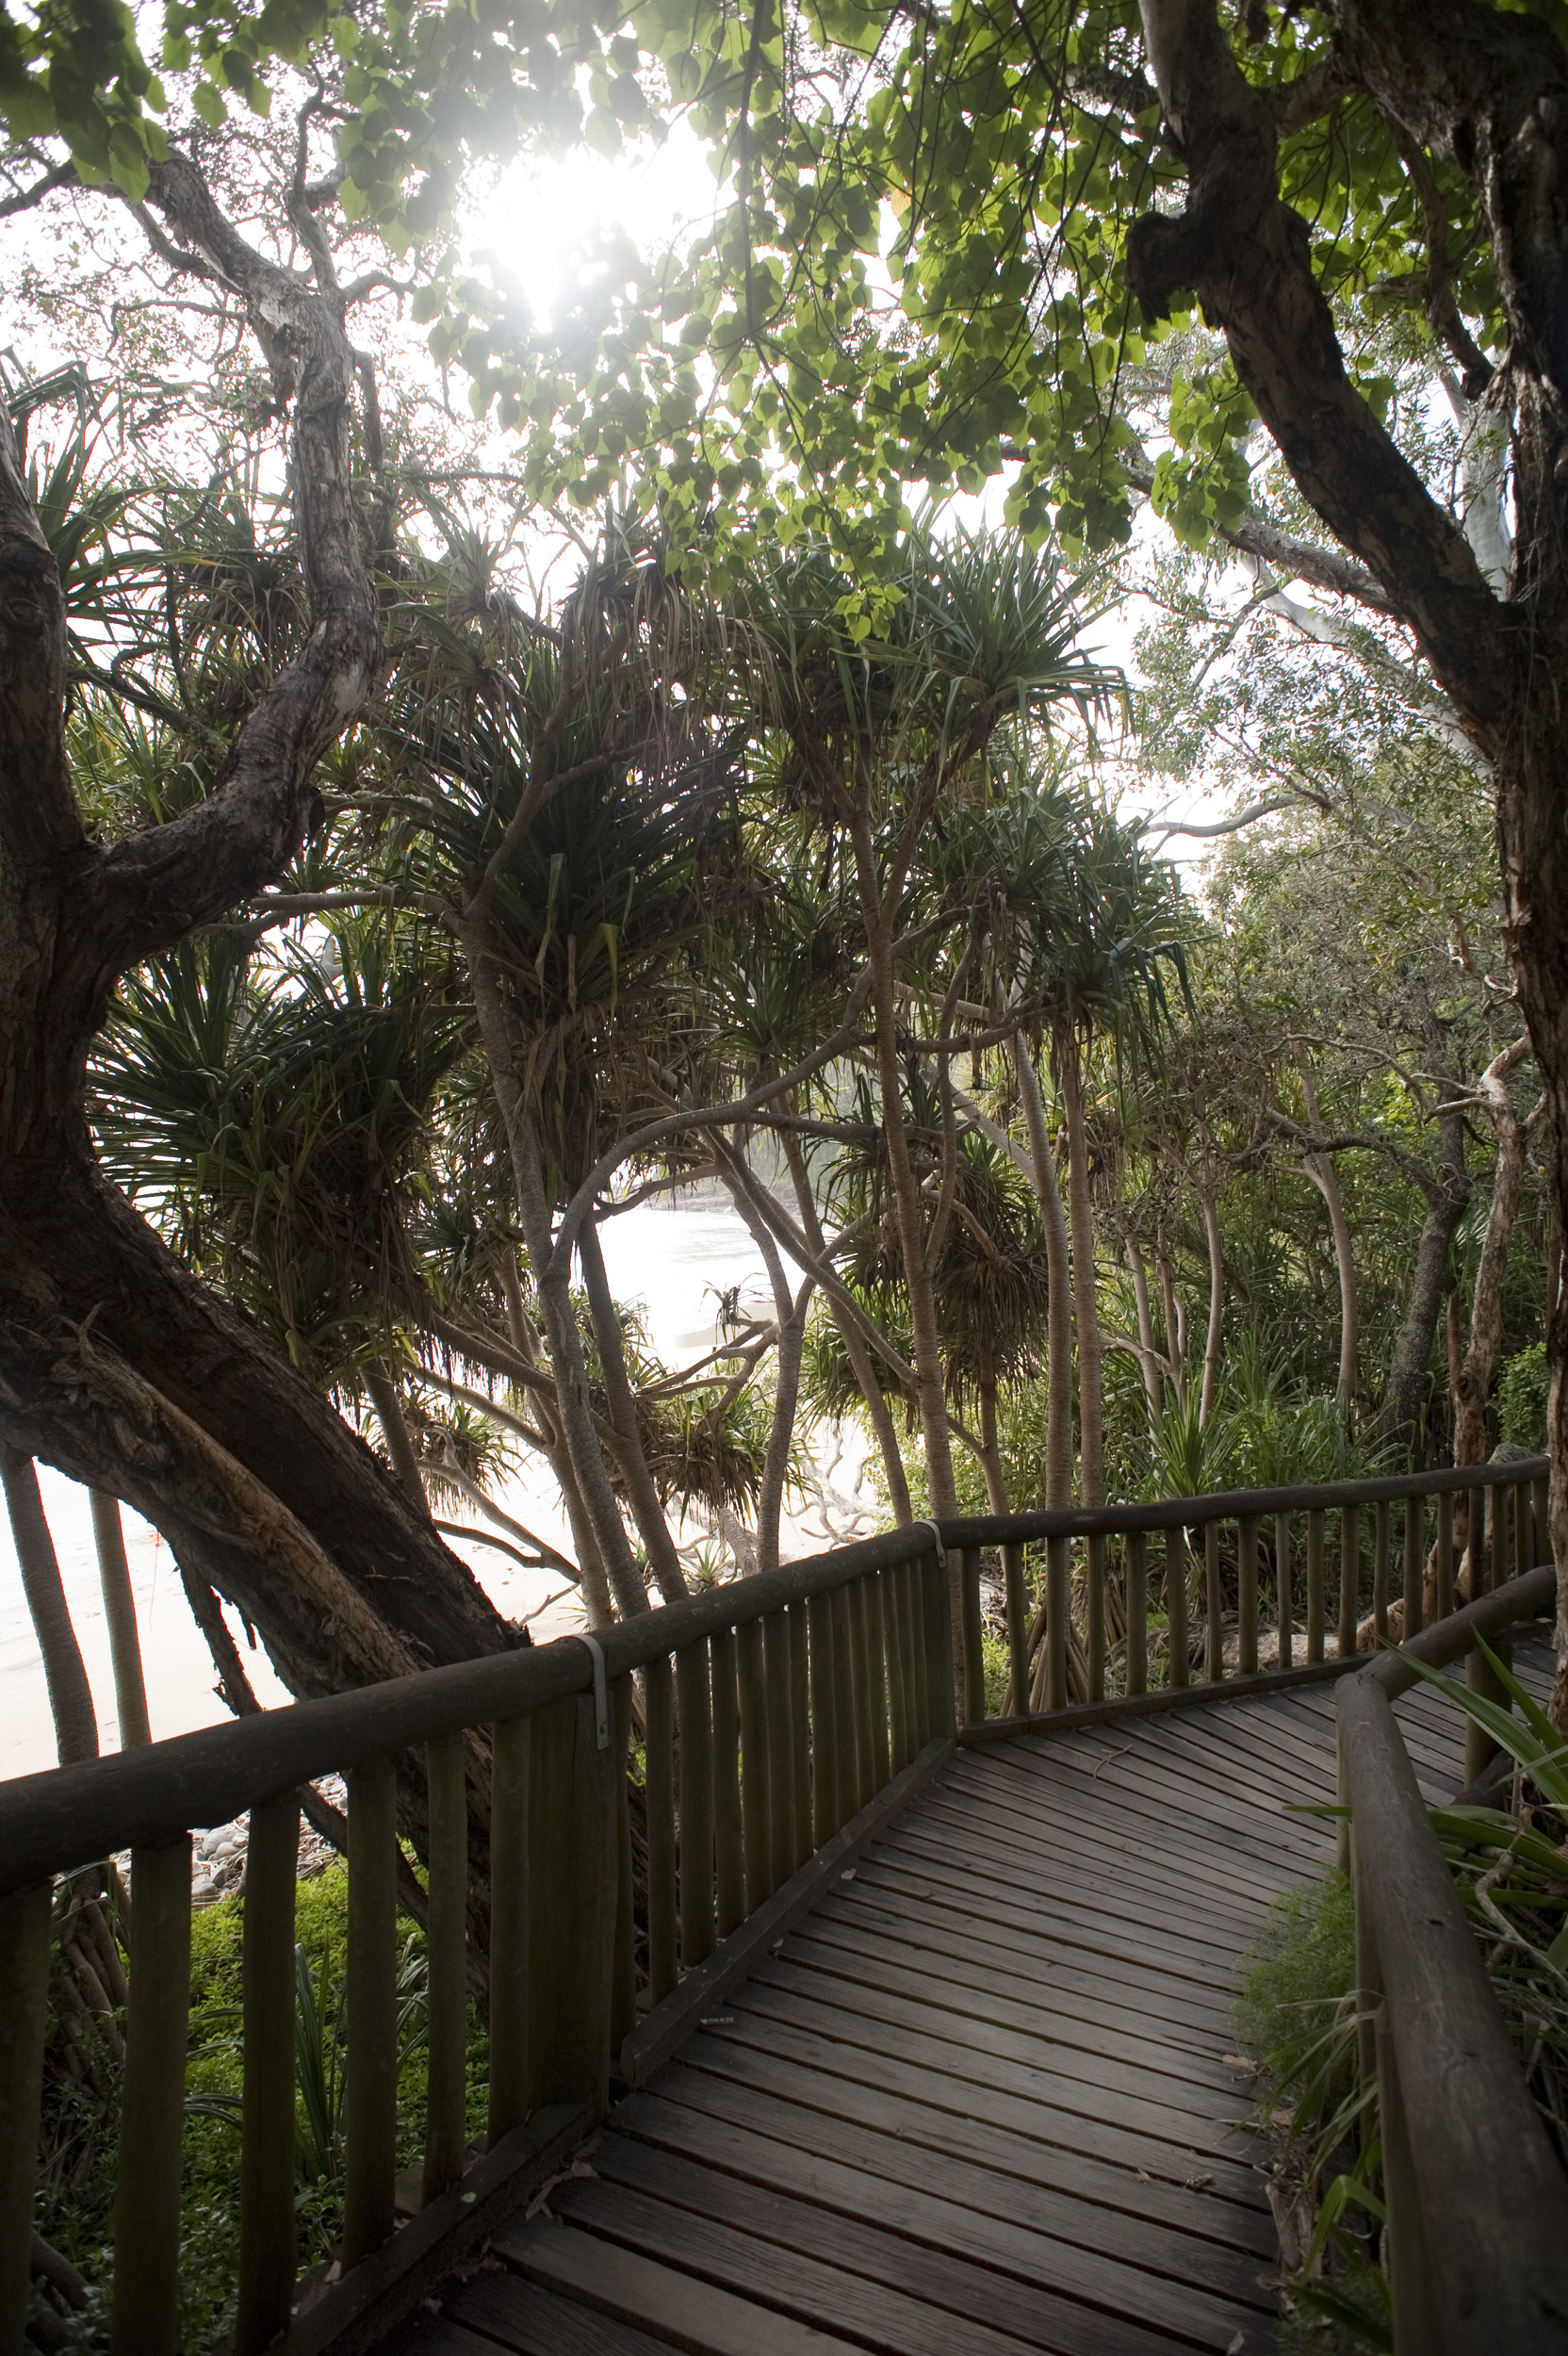 Deserted boardwalk leading through the trees at Pandanus beach, a popular recreational area close to Brisbane, Australia